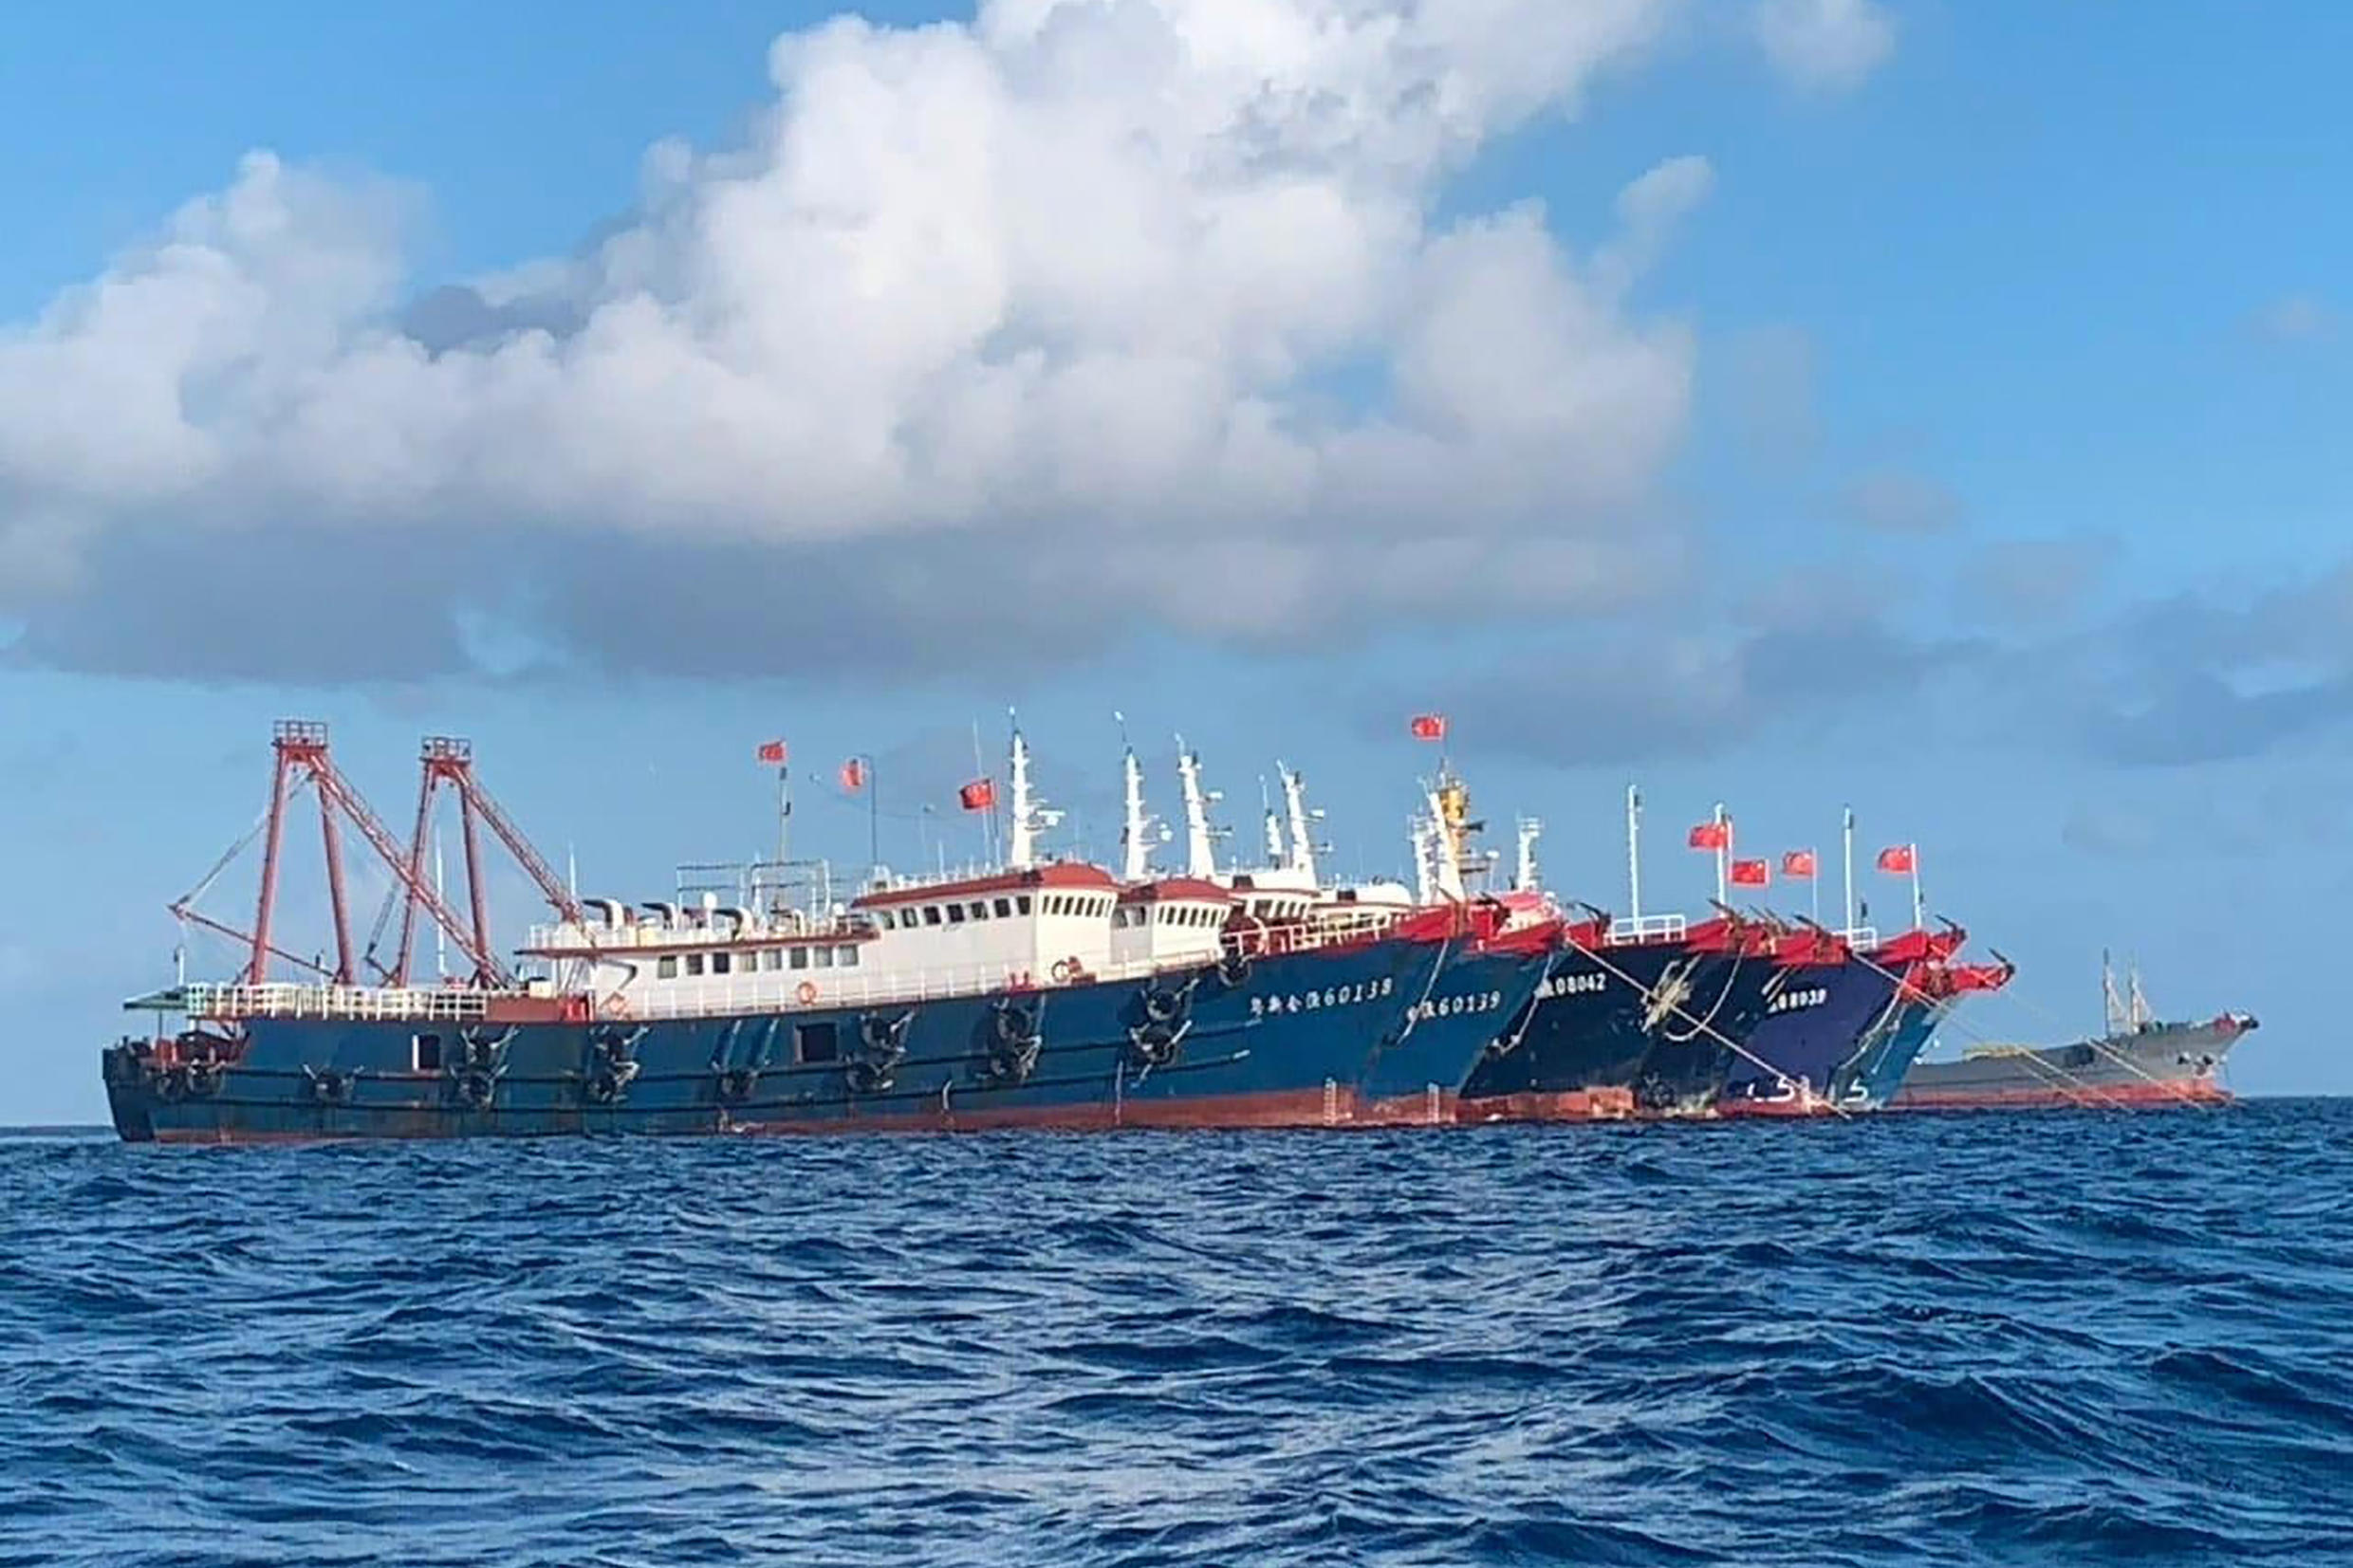 A fleet of Chinese vessels anchored at the Whitsun Reef has sparked a diplomatic row between Manila and Beijing